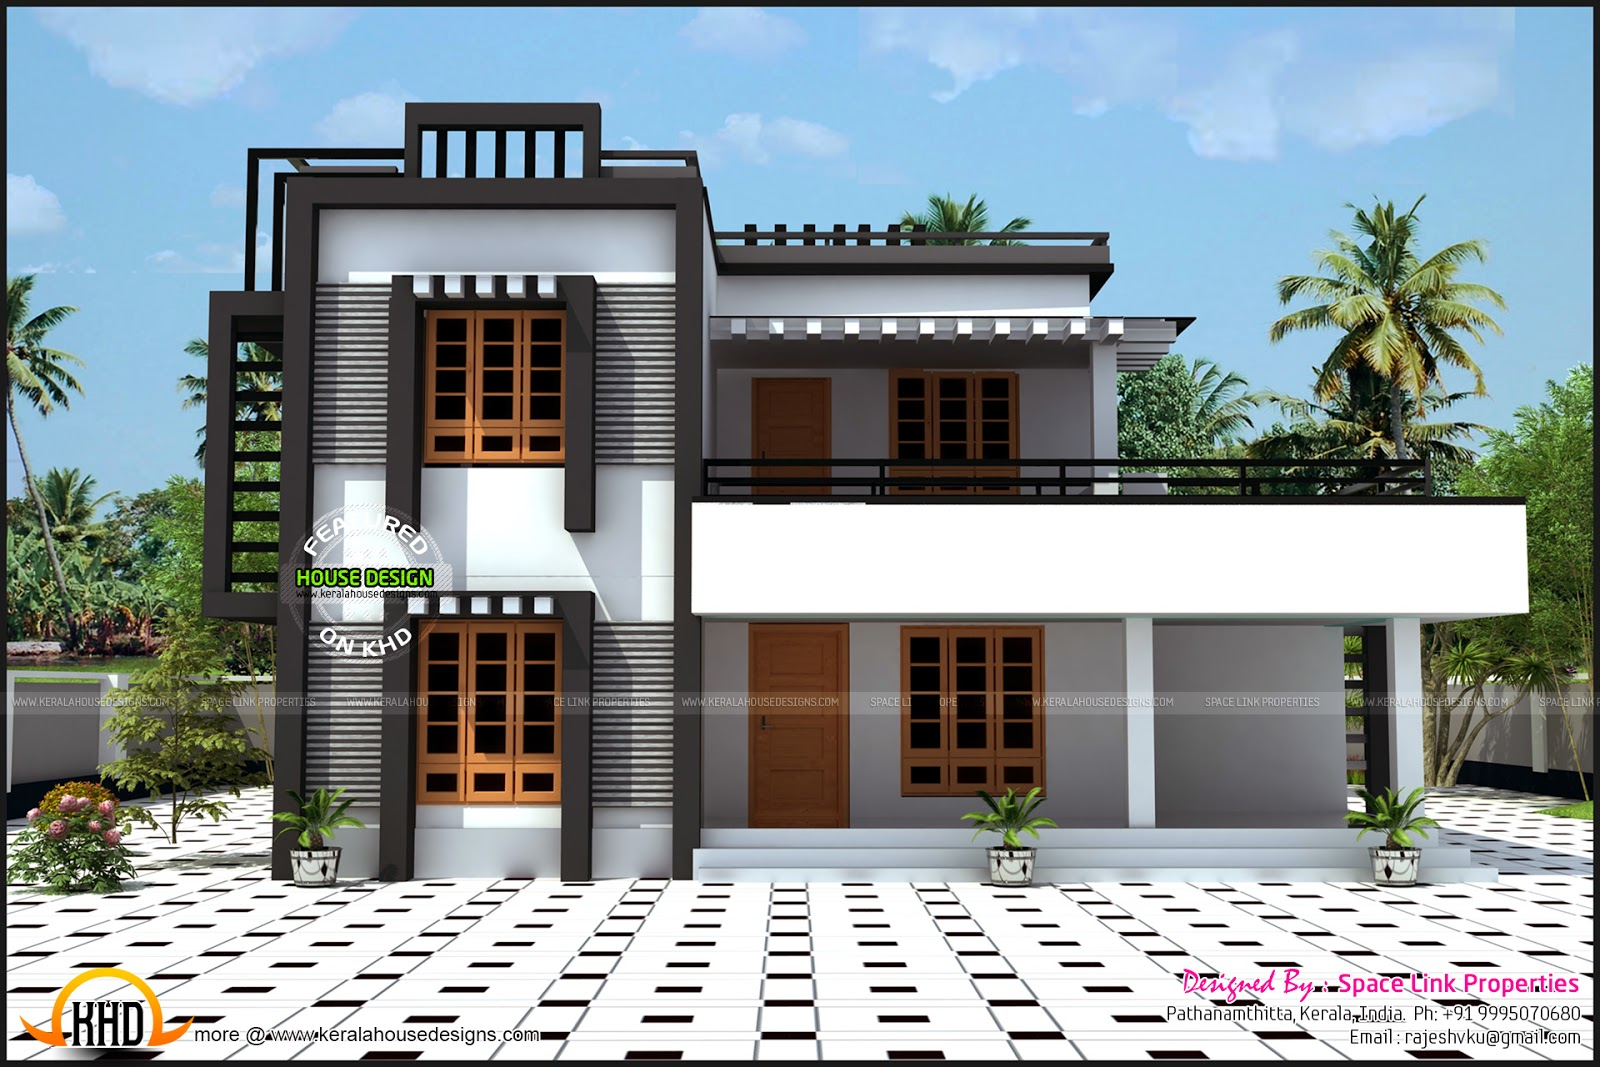 sq ft box type house kerala home design floor plans box house plans home plan collections